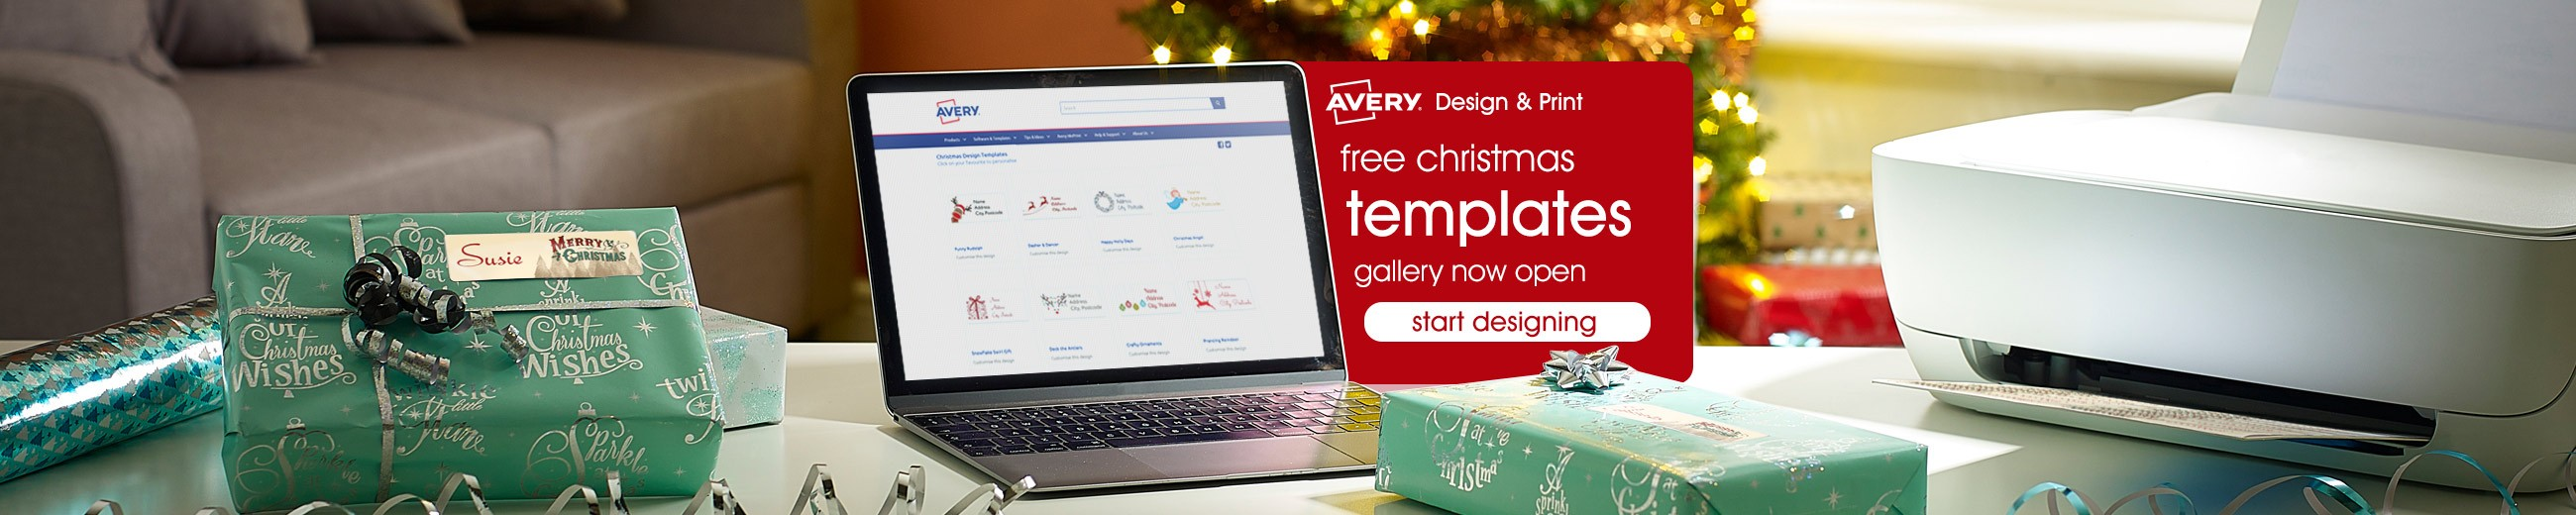 avery uk home page avery